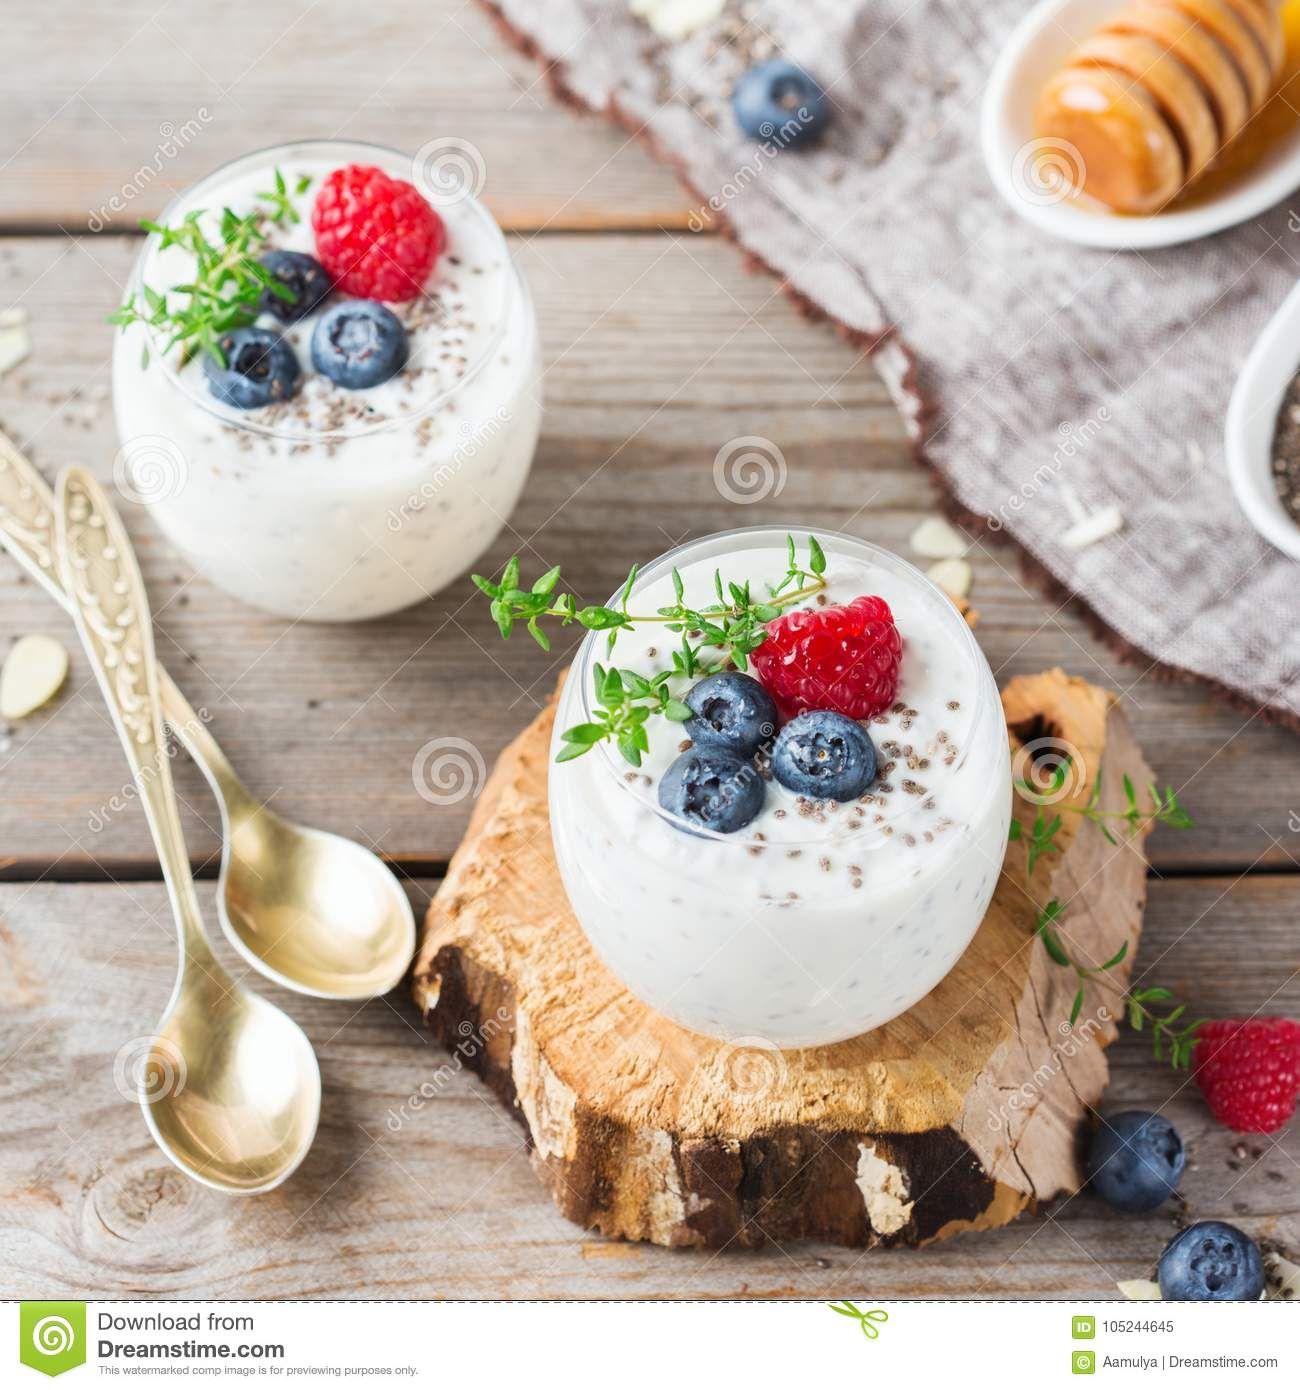 Healthy Vegan White Chia Pudding With Berries And Green Thyme Stock